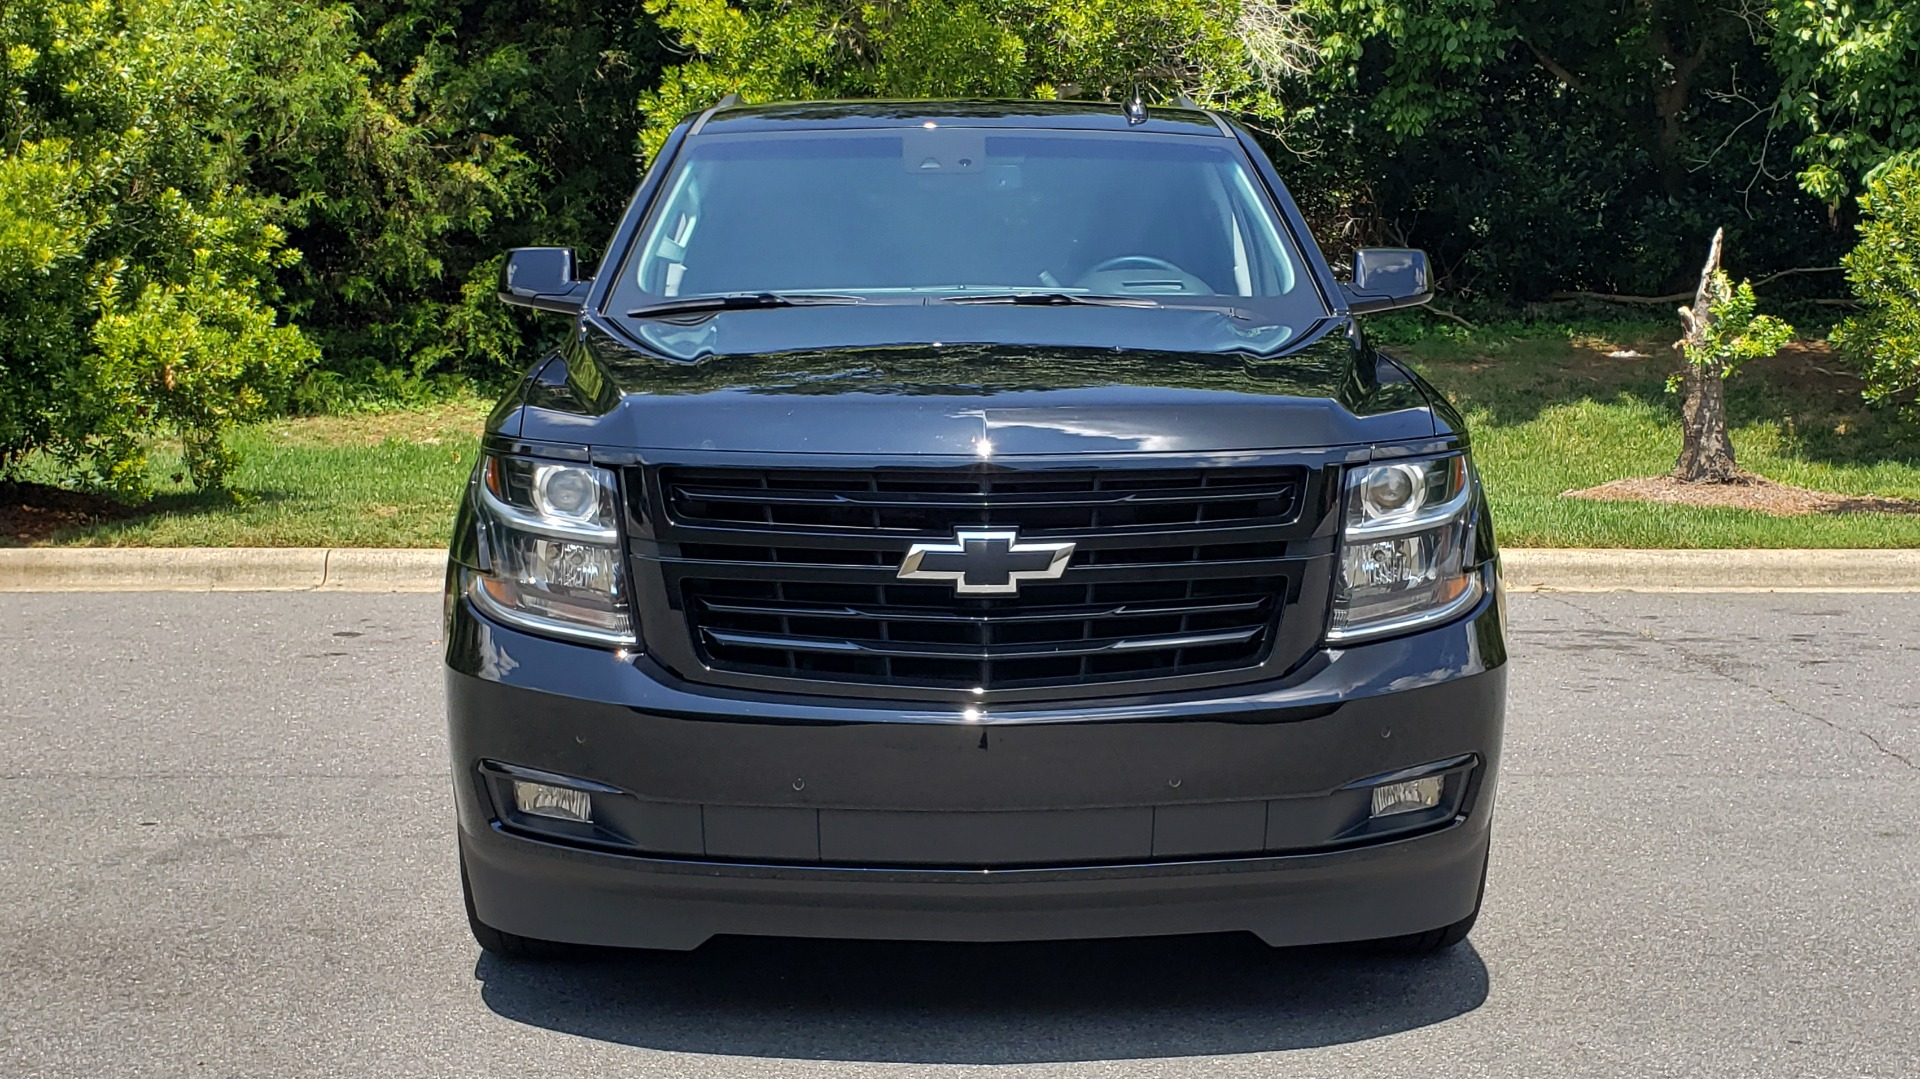 Used 2018 Chevrolet TAHOE PREMIER 4WD / RST EDIT / NAV / SUNROOF / CAMERA / 3-ROW for sale Sold at Formula Imports in Charlotte NC 28227 20